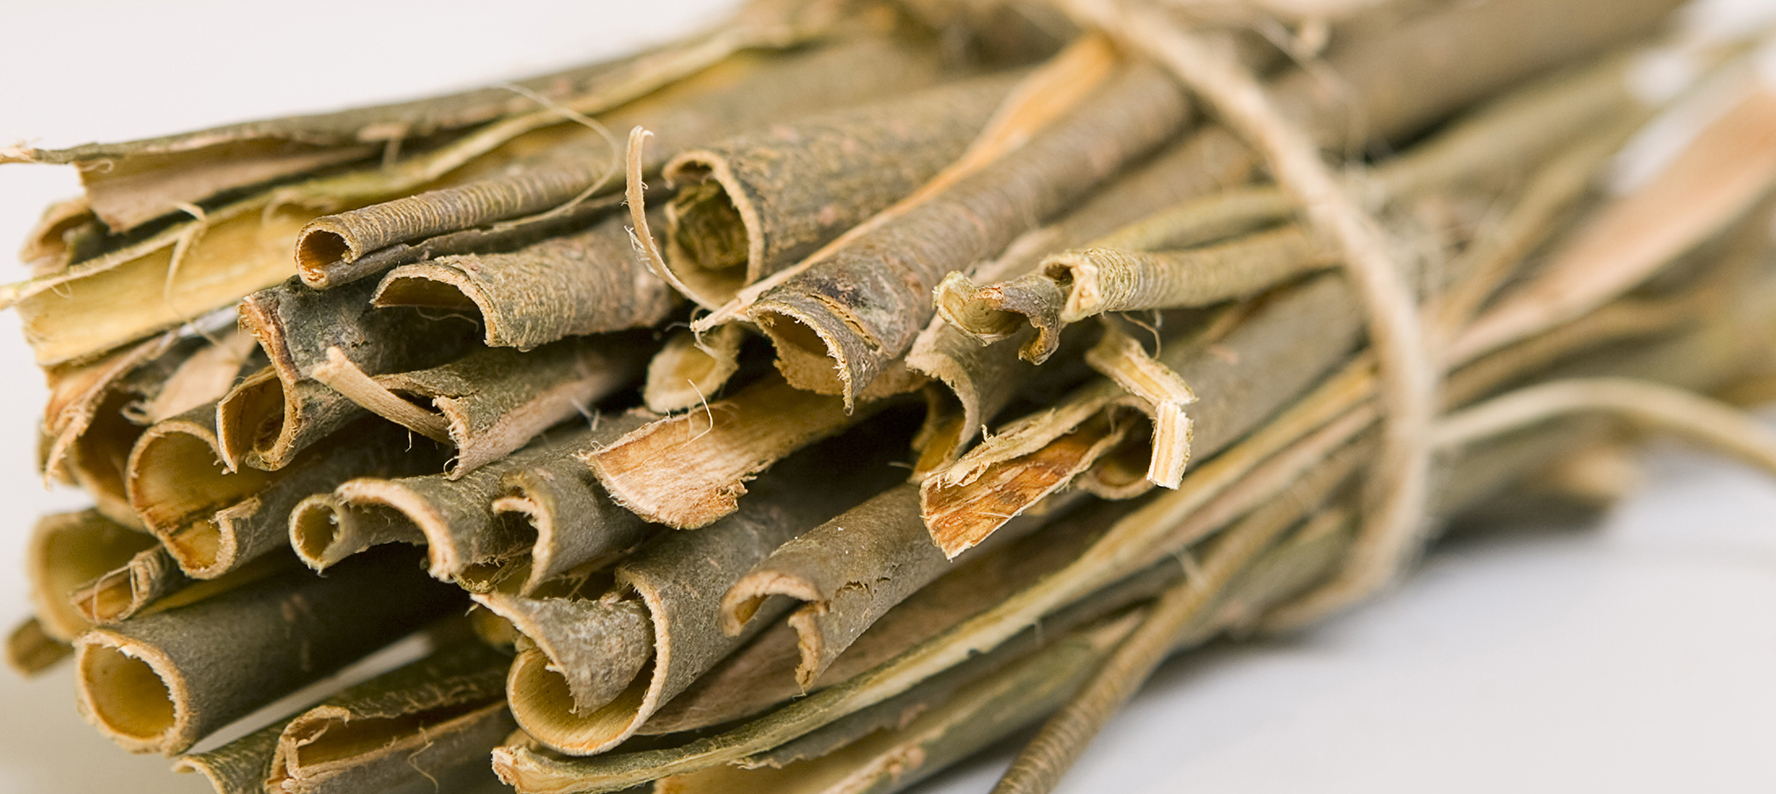 White willow bark is used in natural skin care products for its antioxidant, antimicrobial, astringent, anti aging, and anti-inflammatory properties.